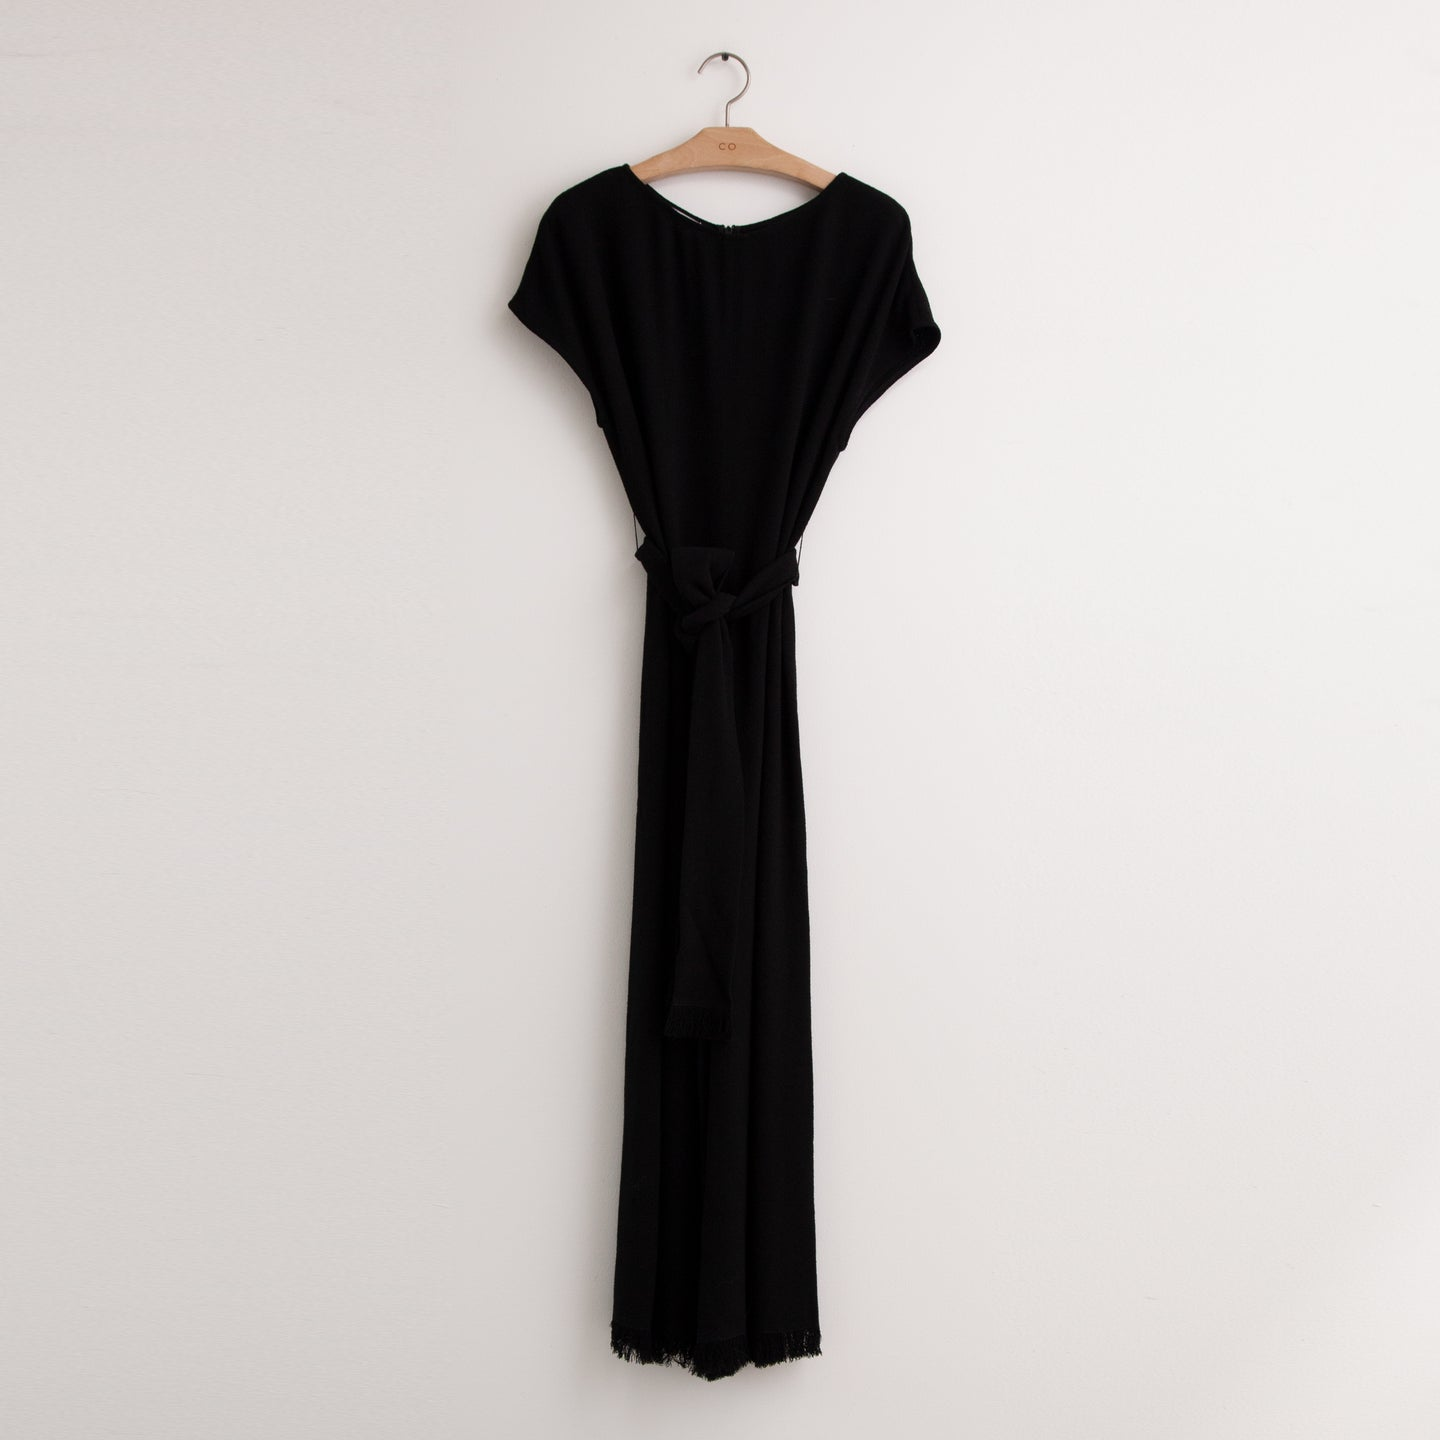 CO - Cap sleeve wide leg jumpsuit with self belt and fringed detail at hem in black pebbled crepe